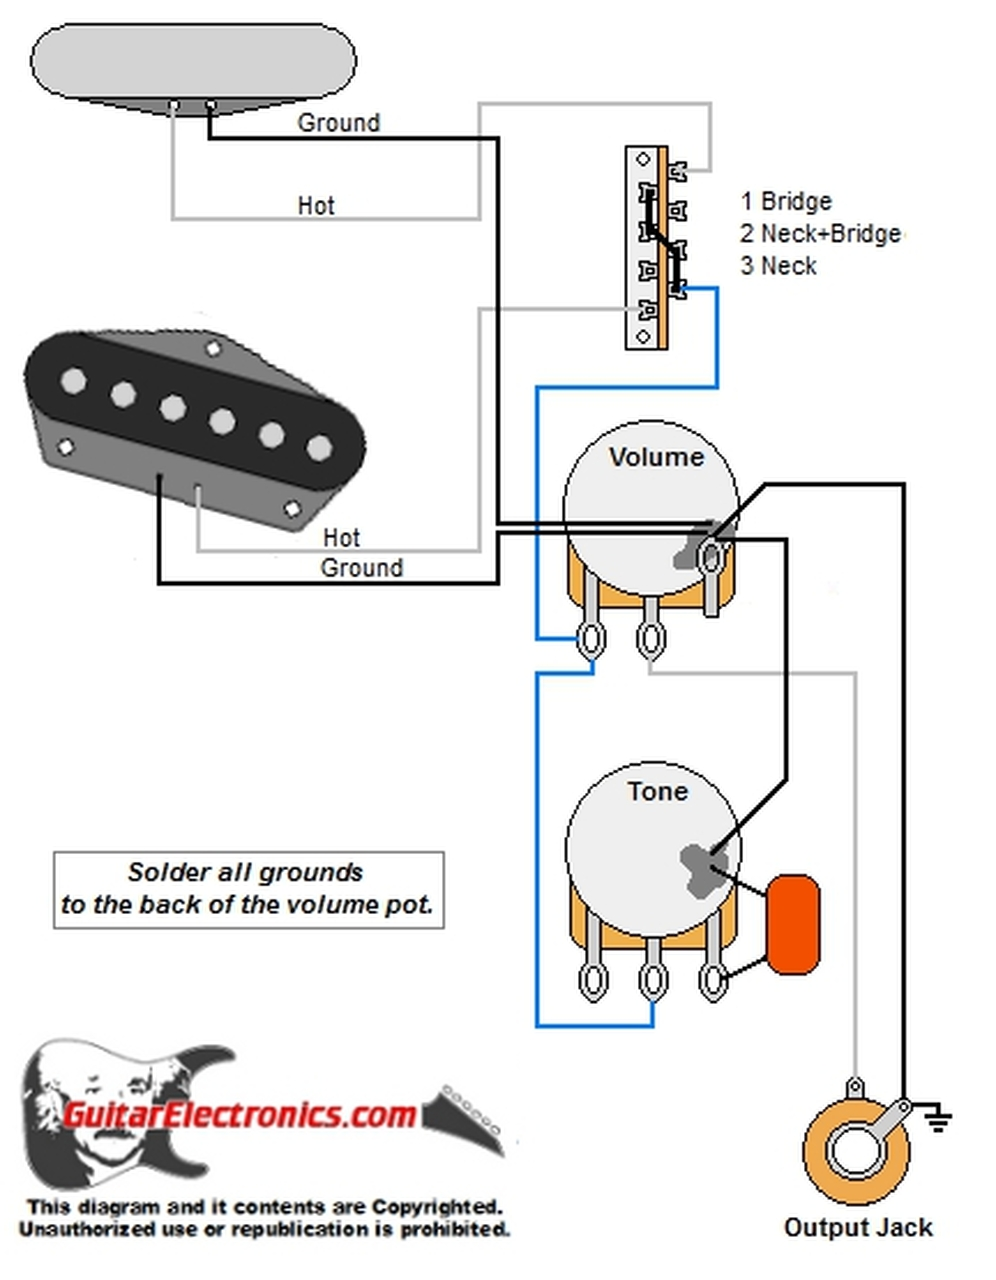 Tele Style Guitar Wiring Diagram | Guitar Wire Harness Schematic |  | Guitar Electronics